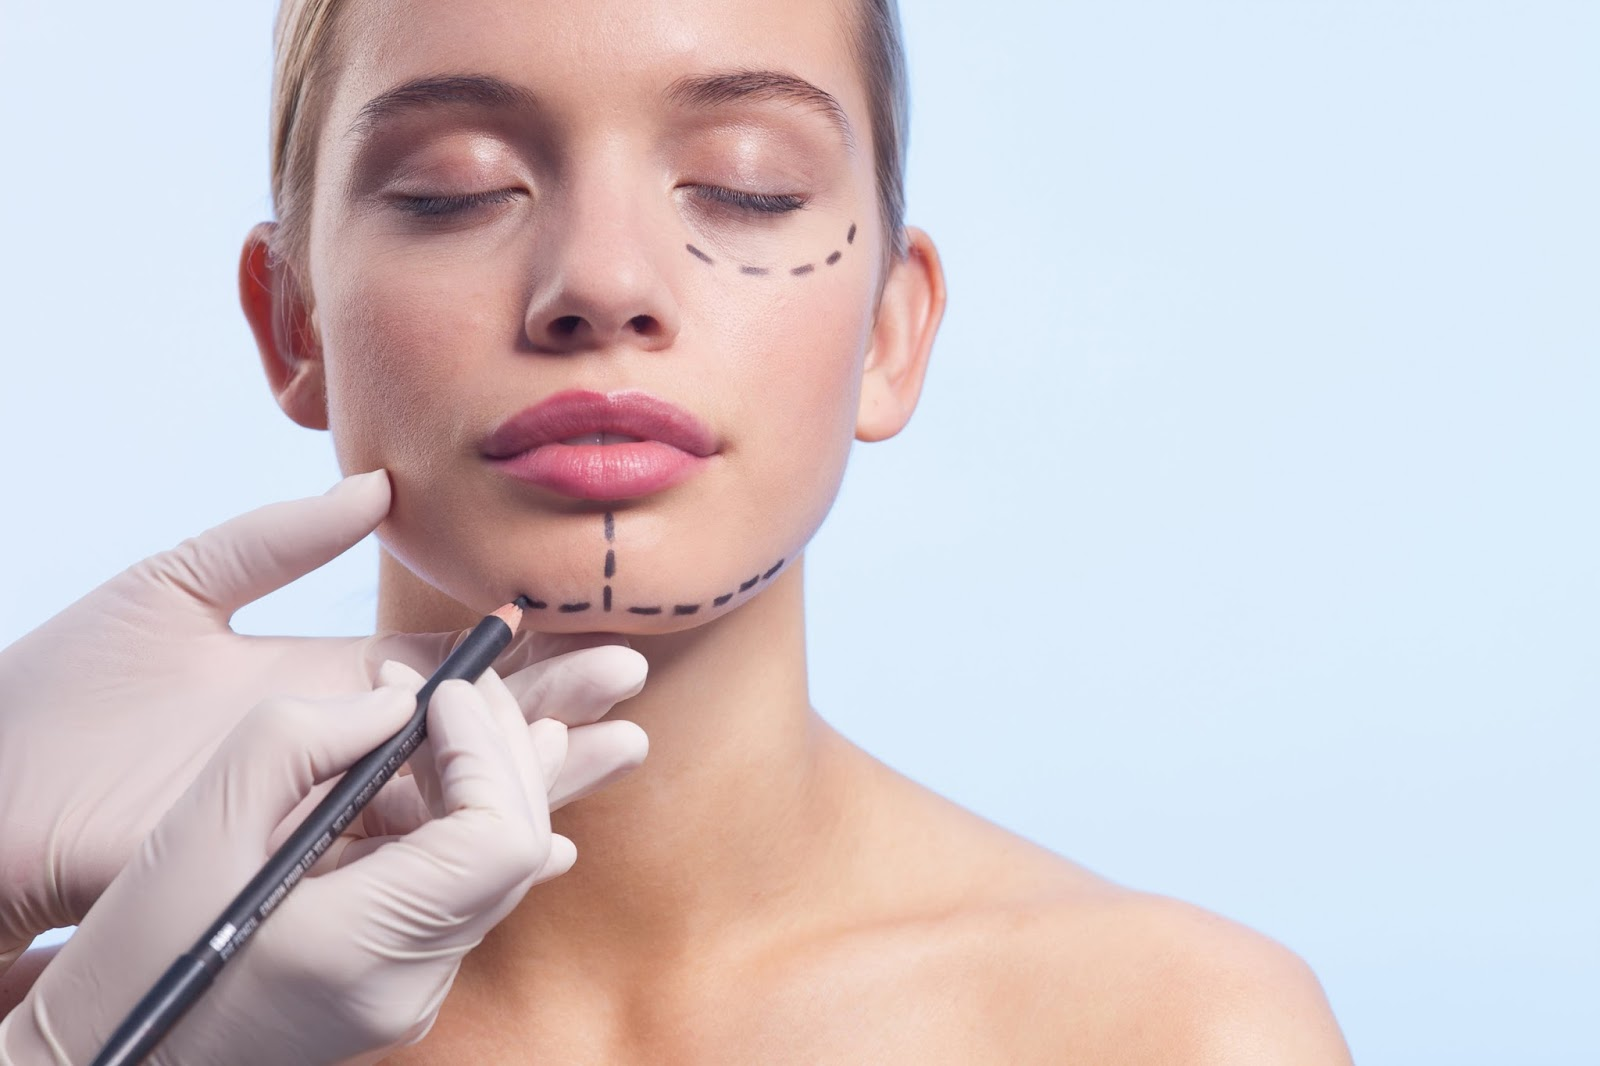 Steps To Take For Plastic Surgery